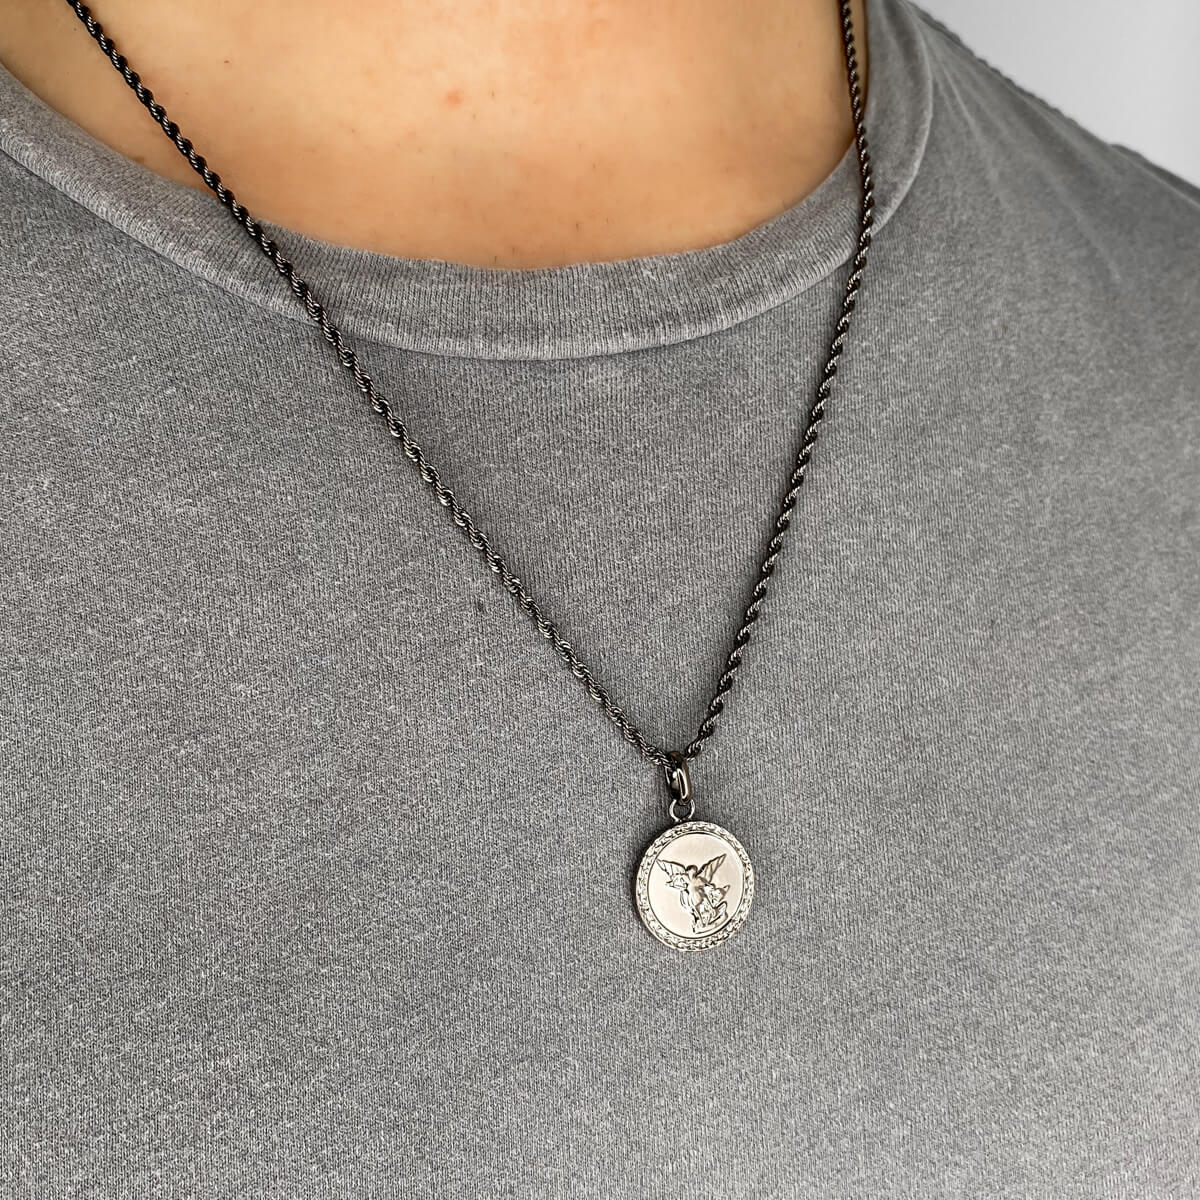 Selected Rope Chain Necklace 20 in (Gun Silver)